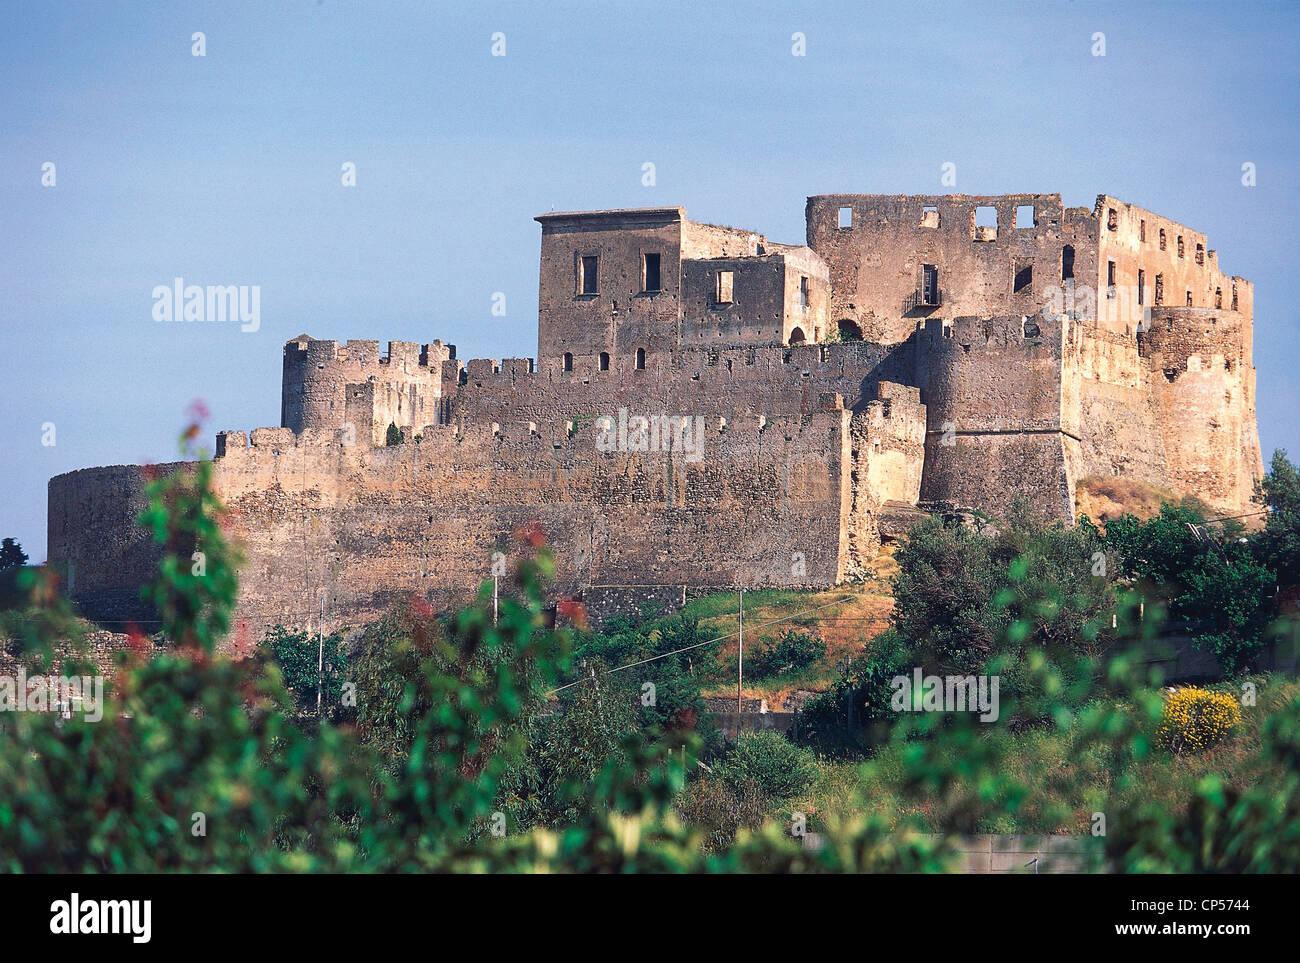 Calabria - Rocca Imperiale (CS). The castle of Frederick II, XIII century. - Stock Image